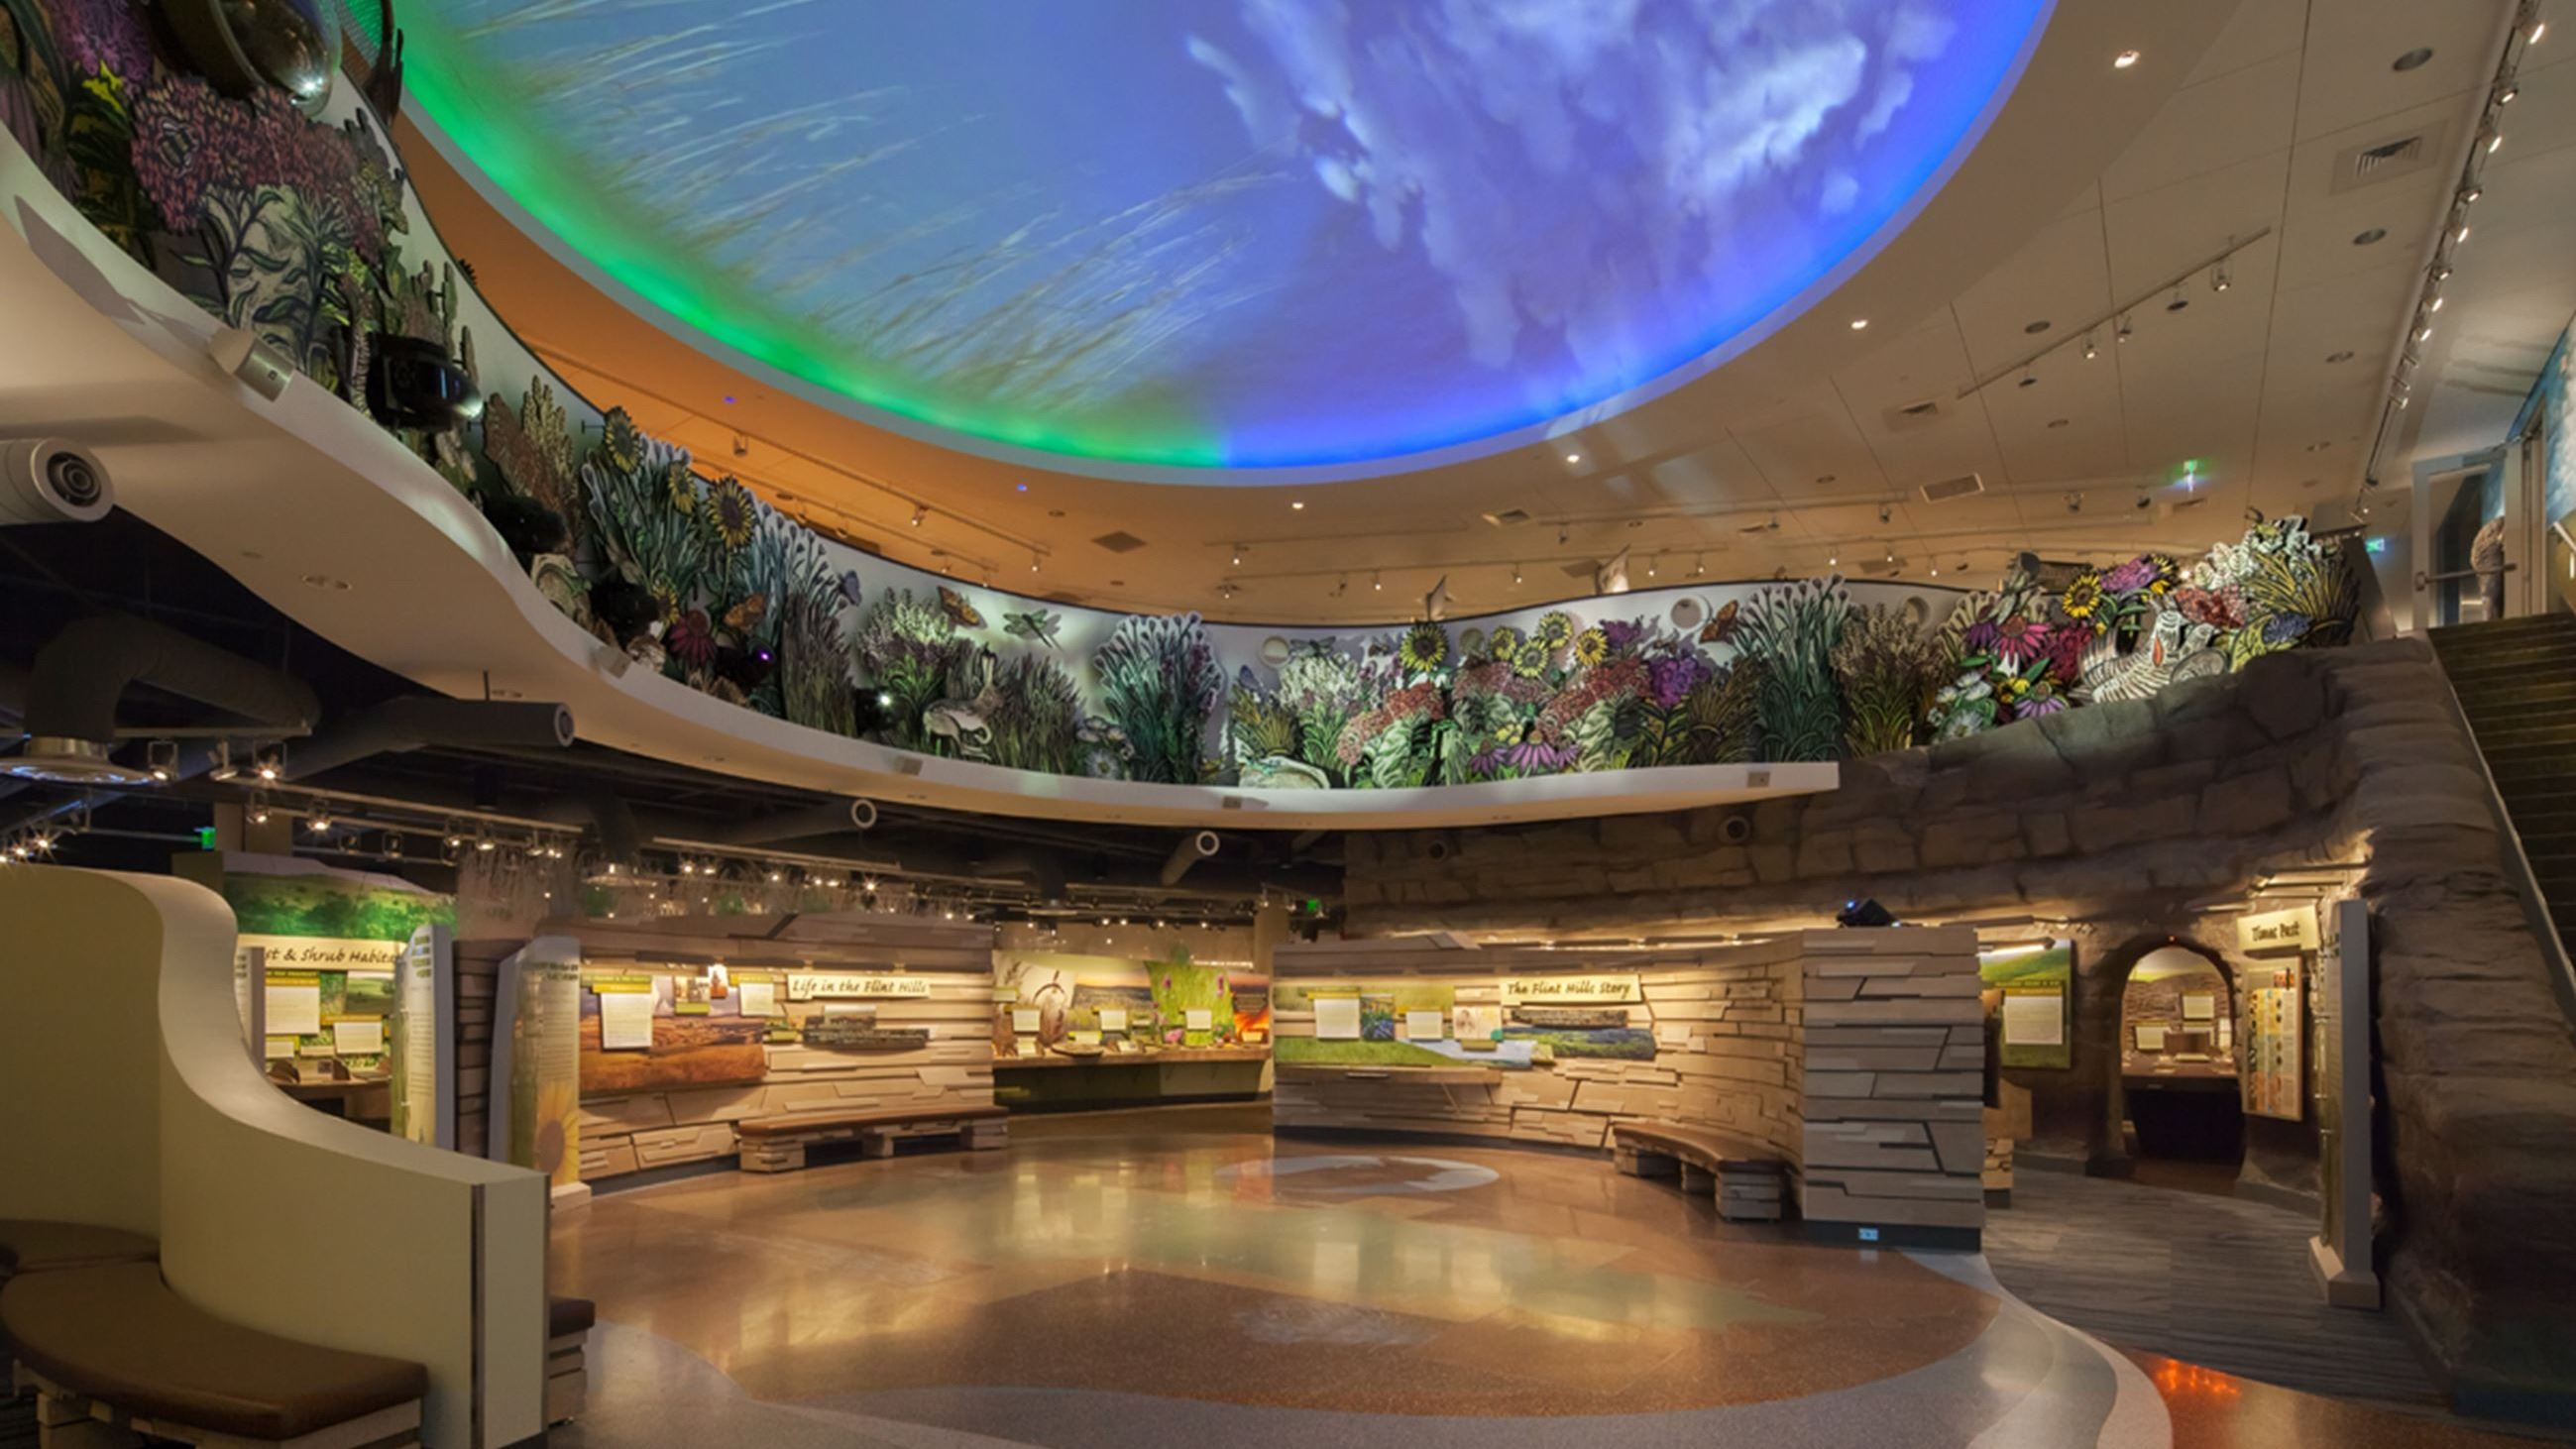 Interior of Flint Hills Discovery Center